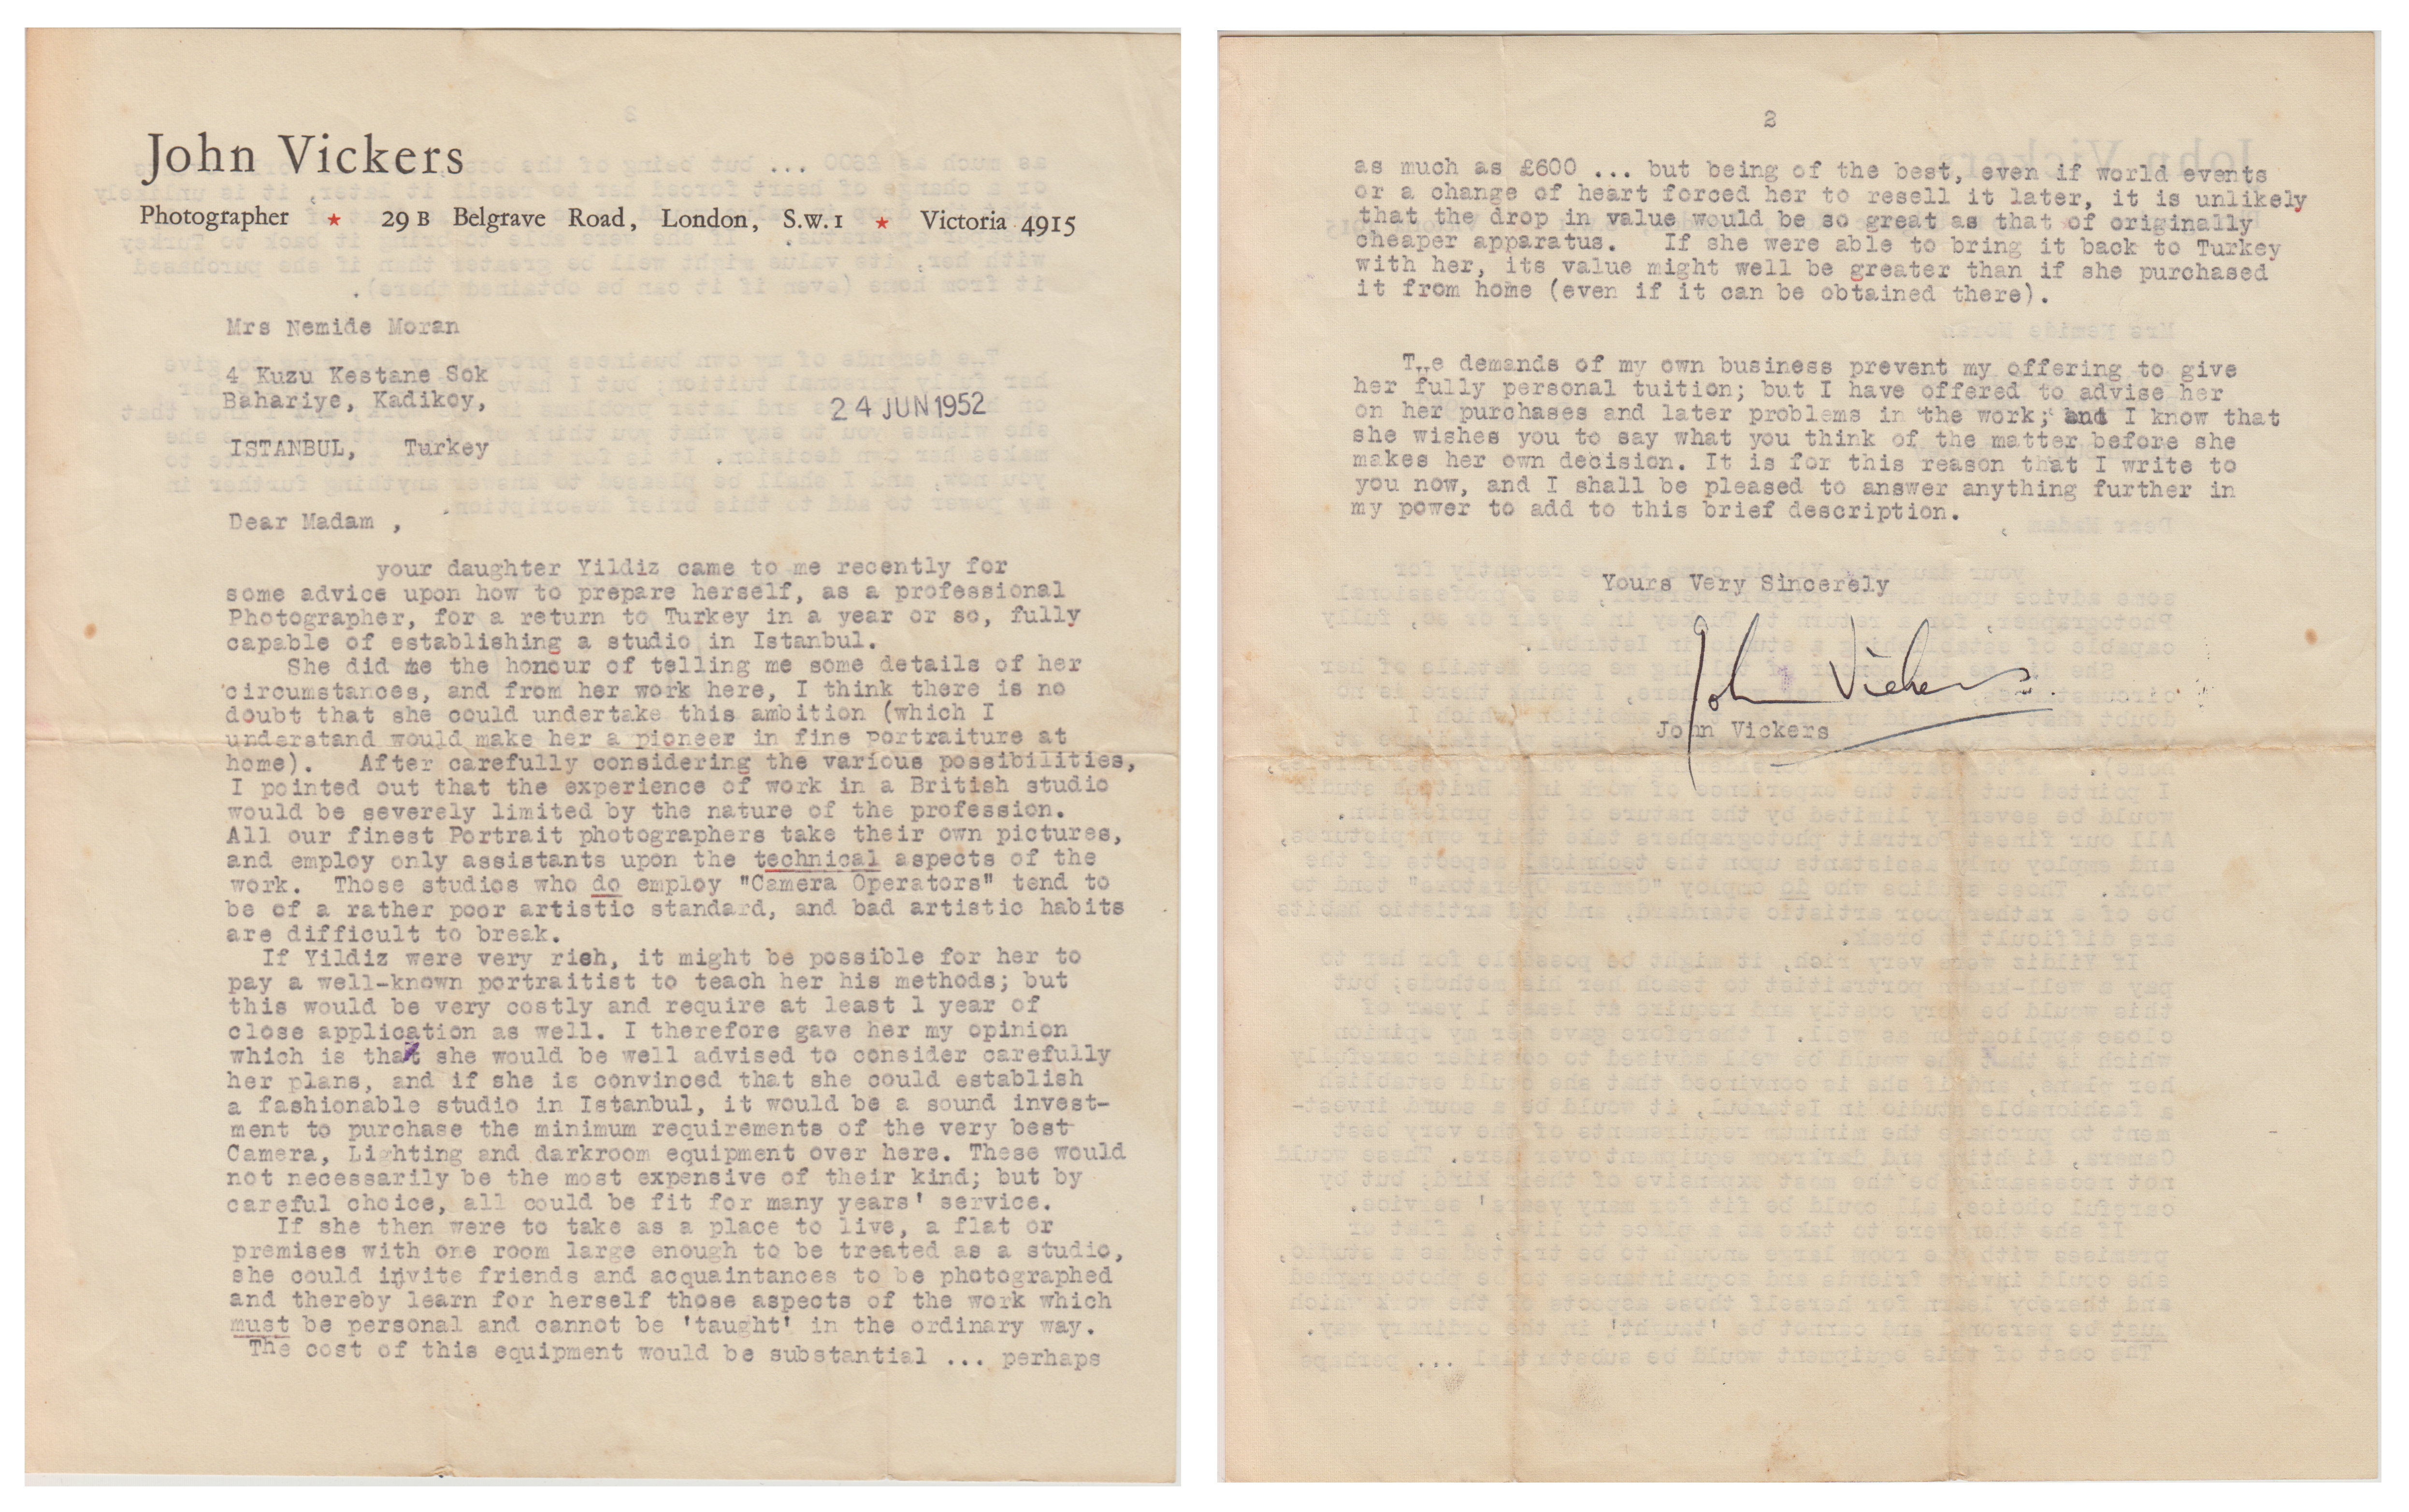 John Vickers' Reference Letter, 1954